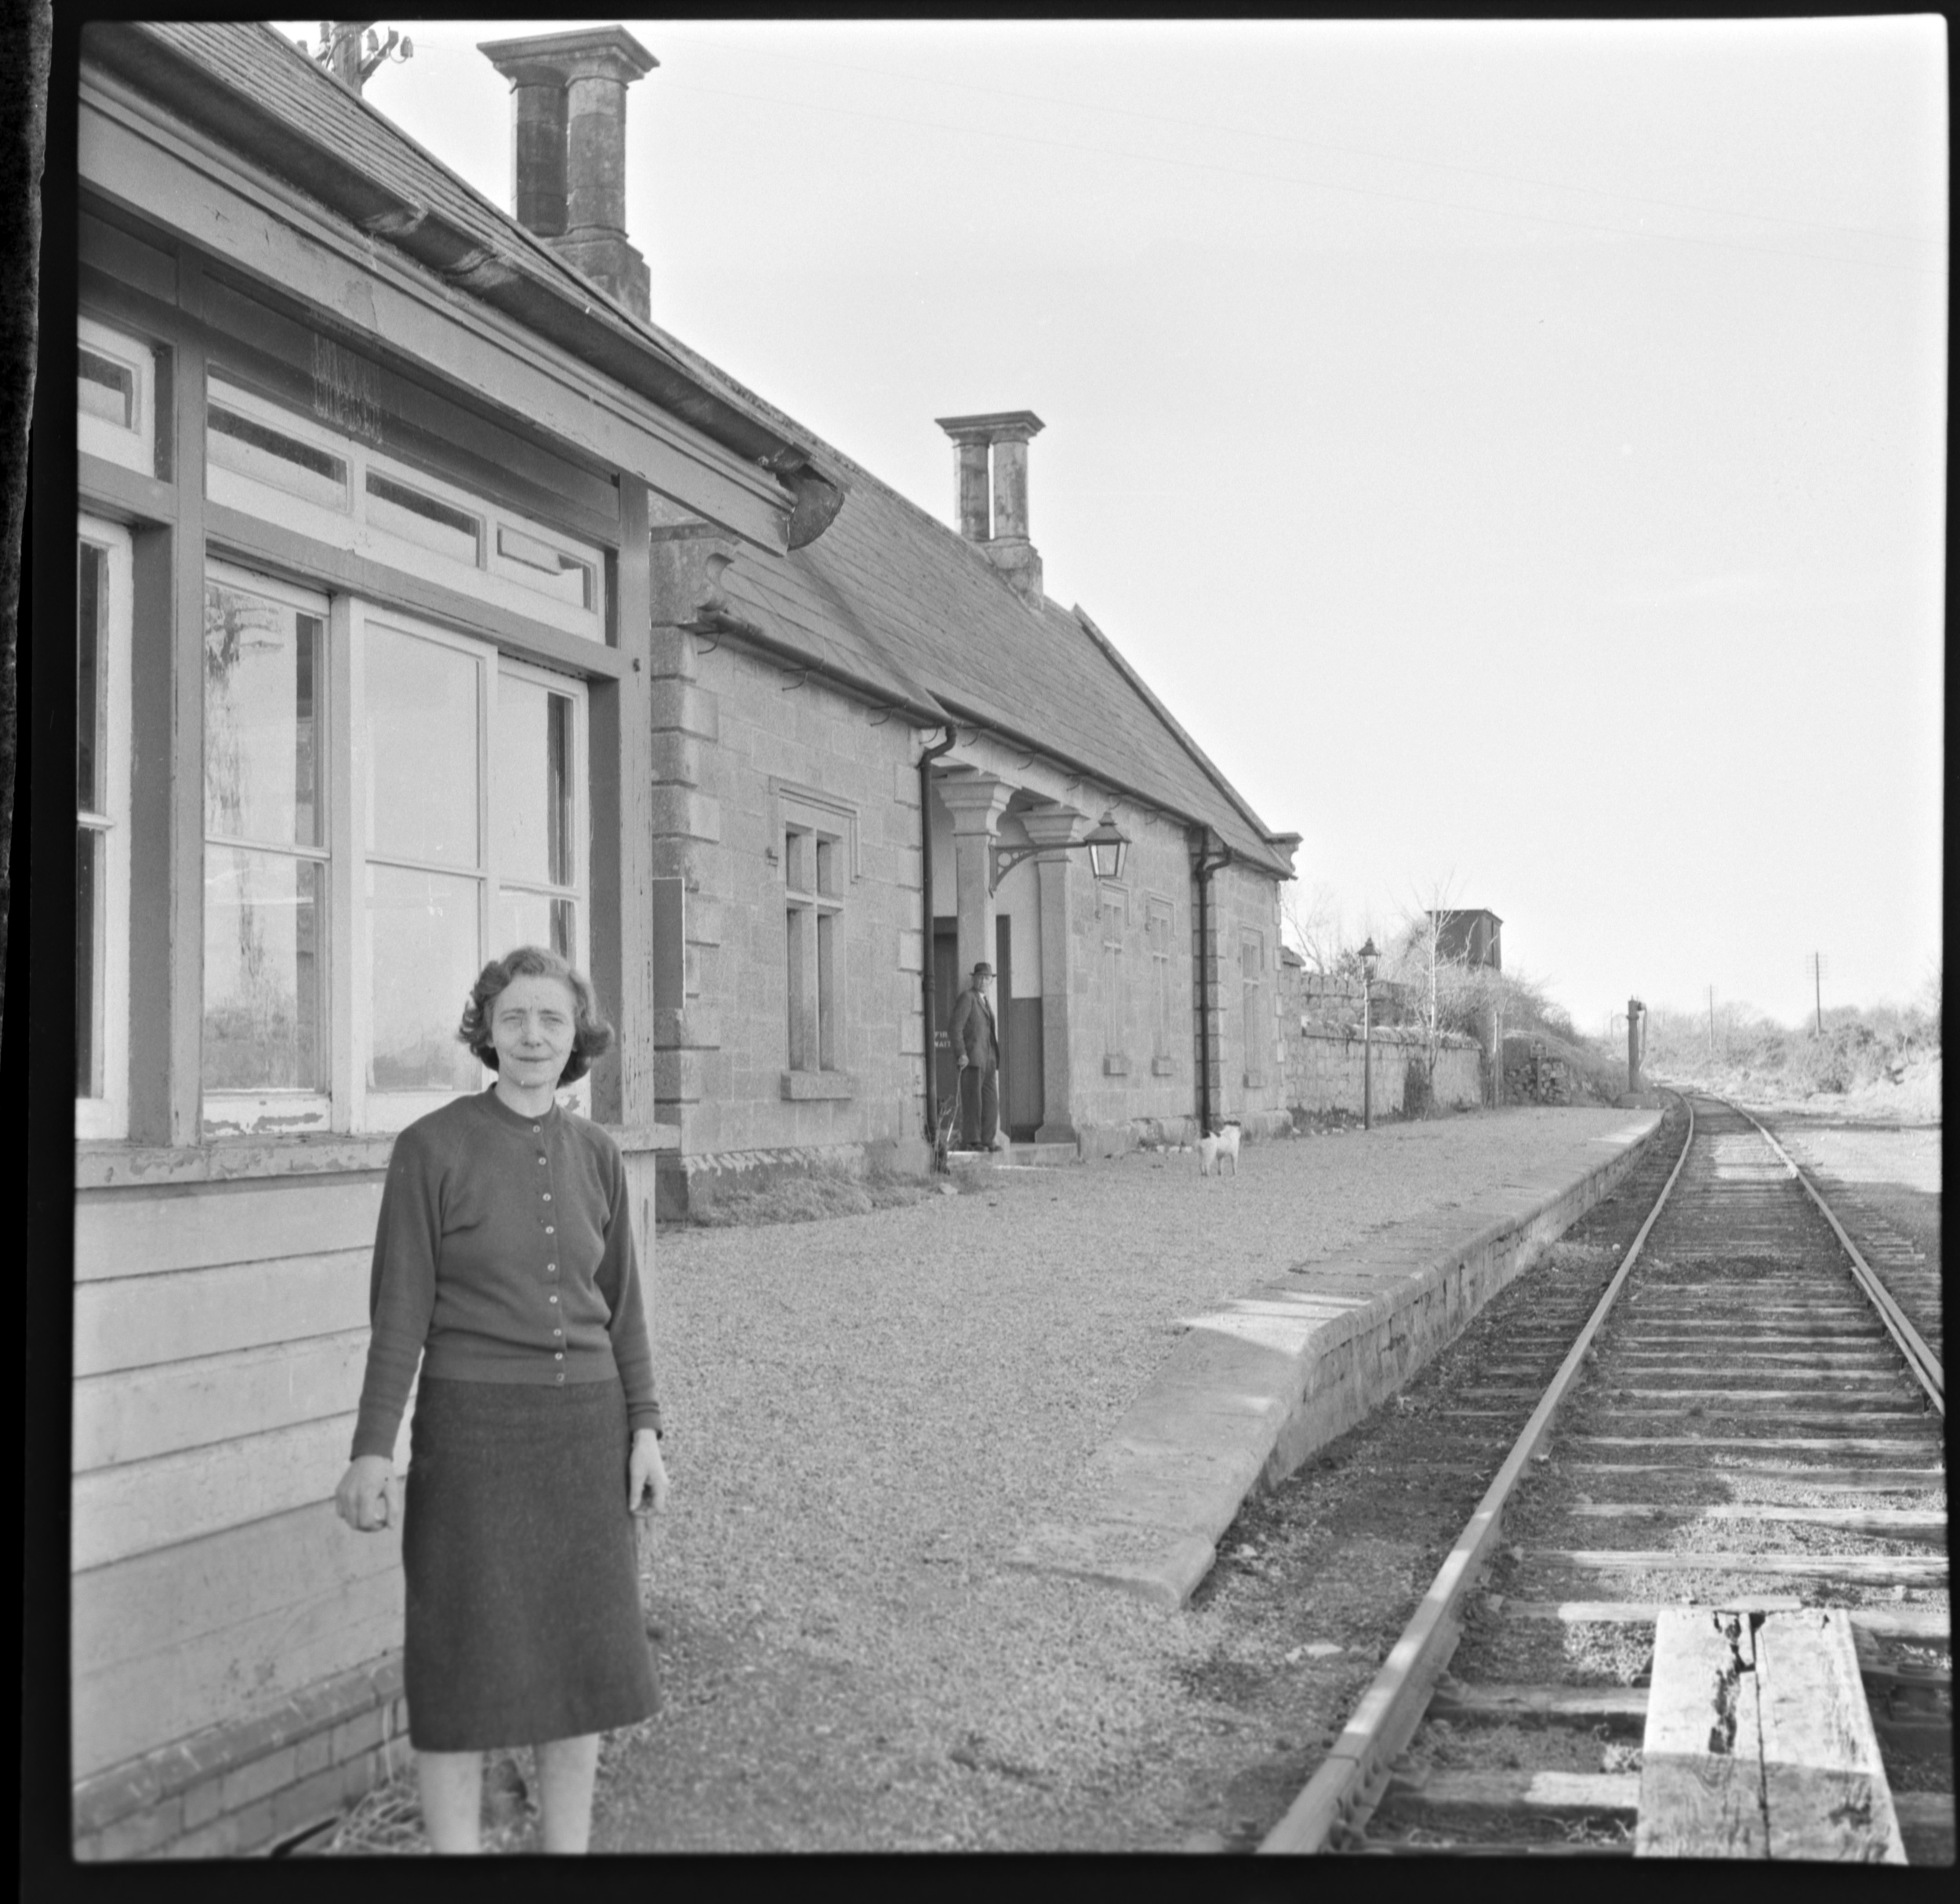 Ireland 1960s, March 23, 1963 This is Mrs Lawlor, pictured at Borris Train Station in Co. Carlow. She has a friendly, but compelling gaze. This photo was taken just days before this train station closed forever on 1 April 1963.